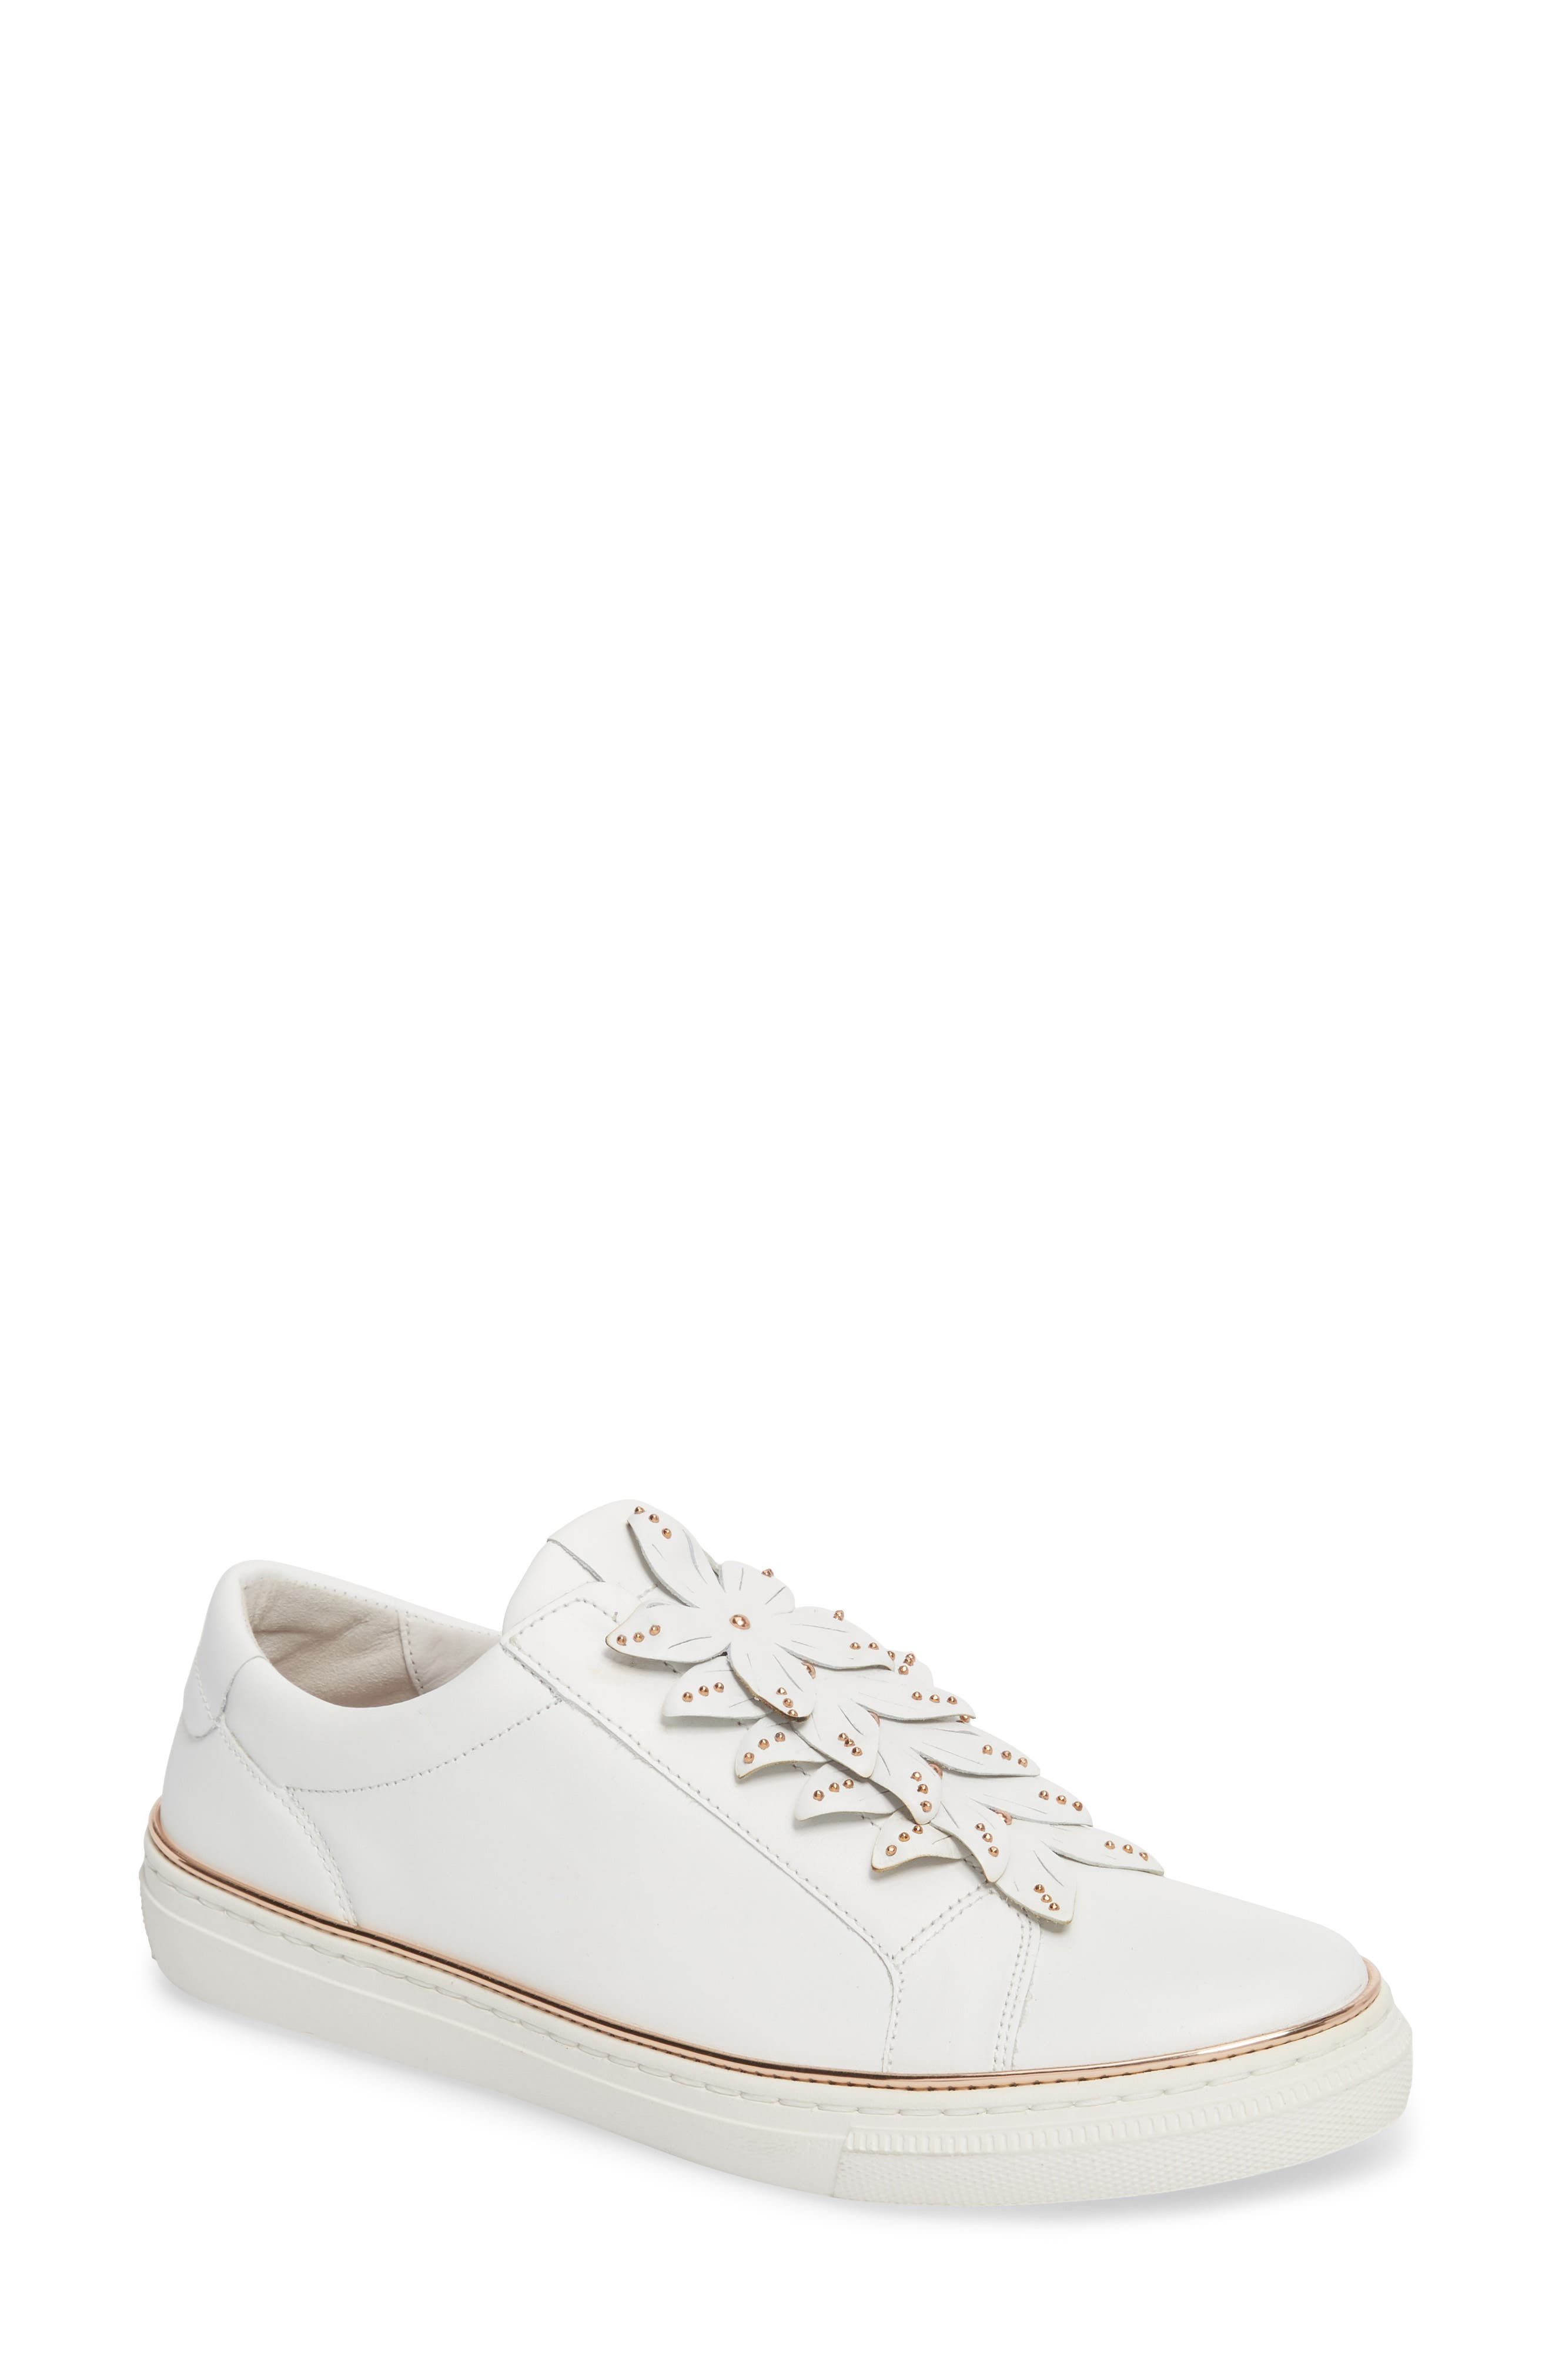 Embellished Sneaker,                             Main thumbnail 1, color,                             White Leather